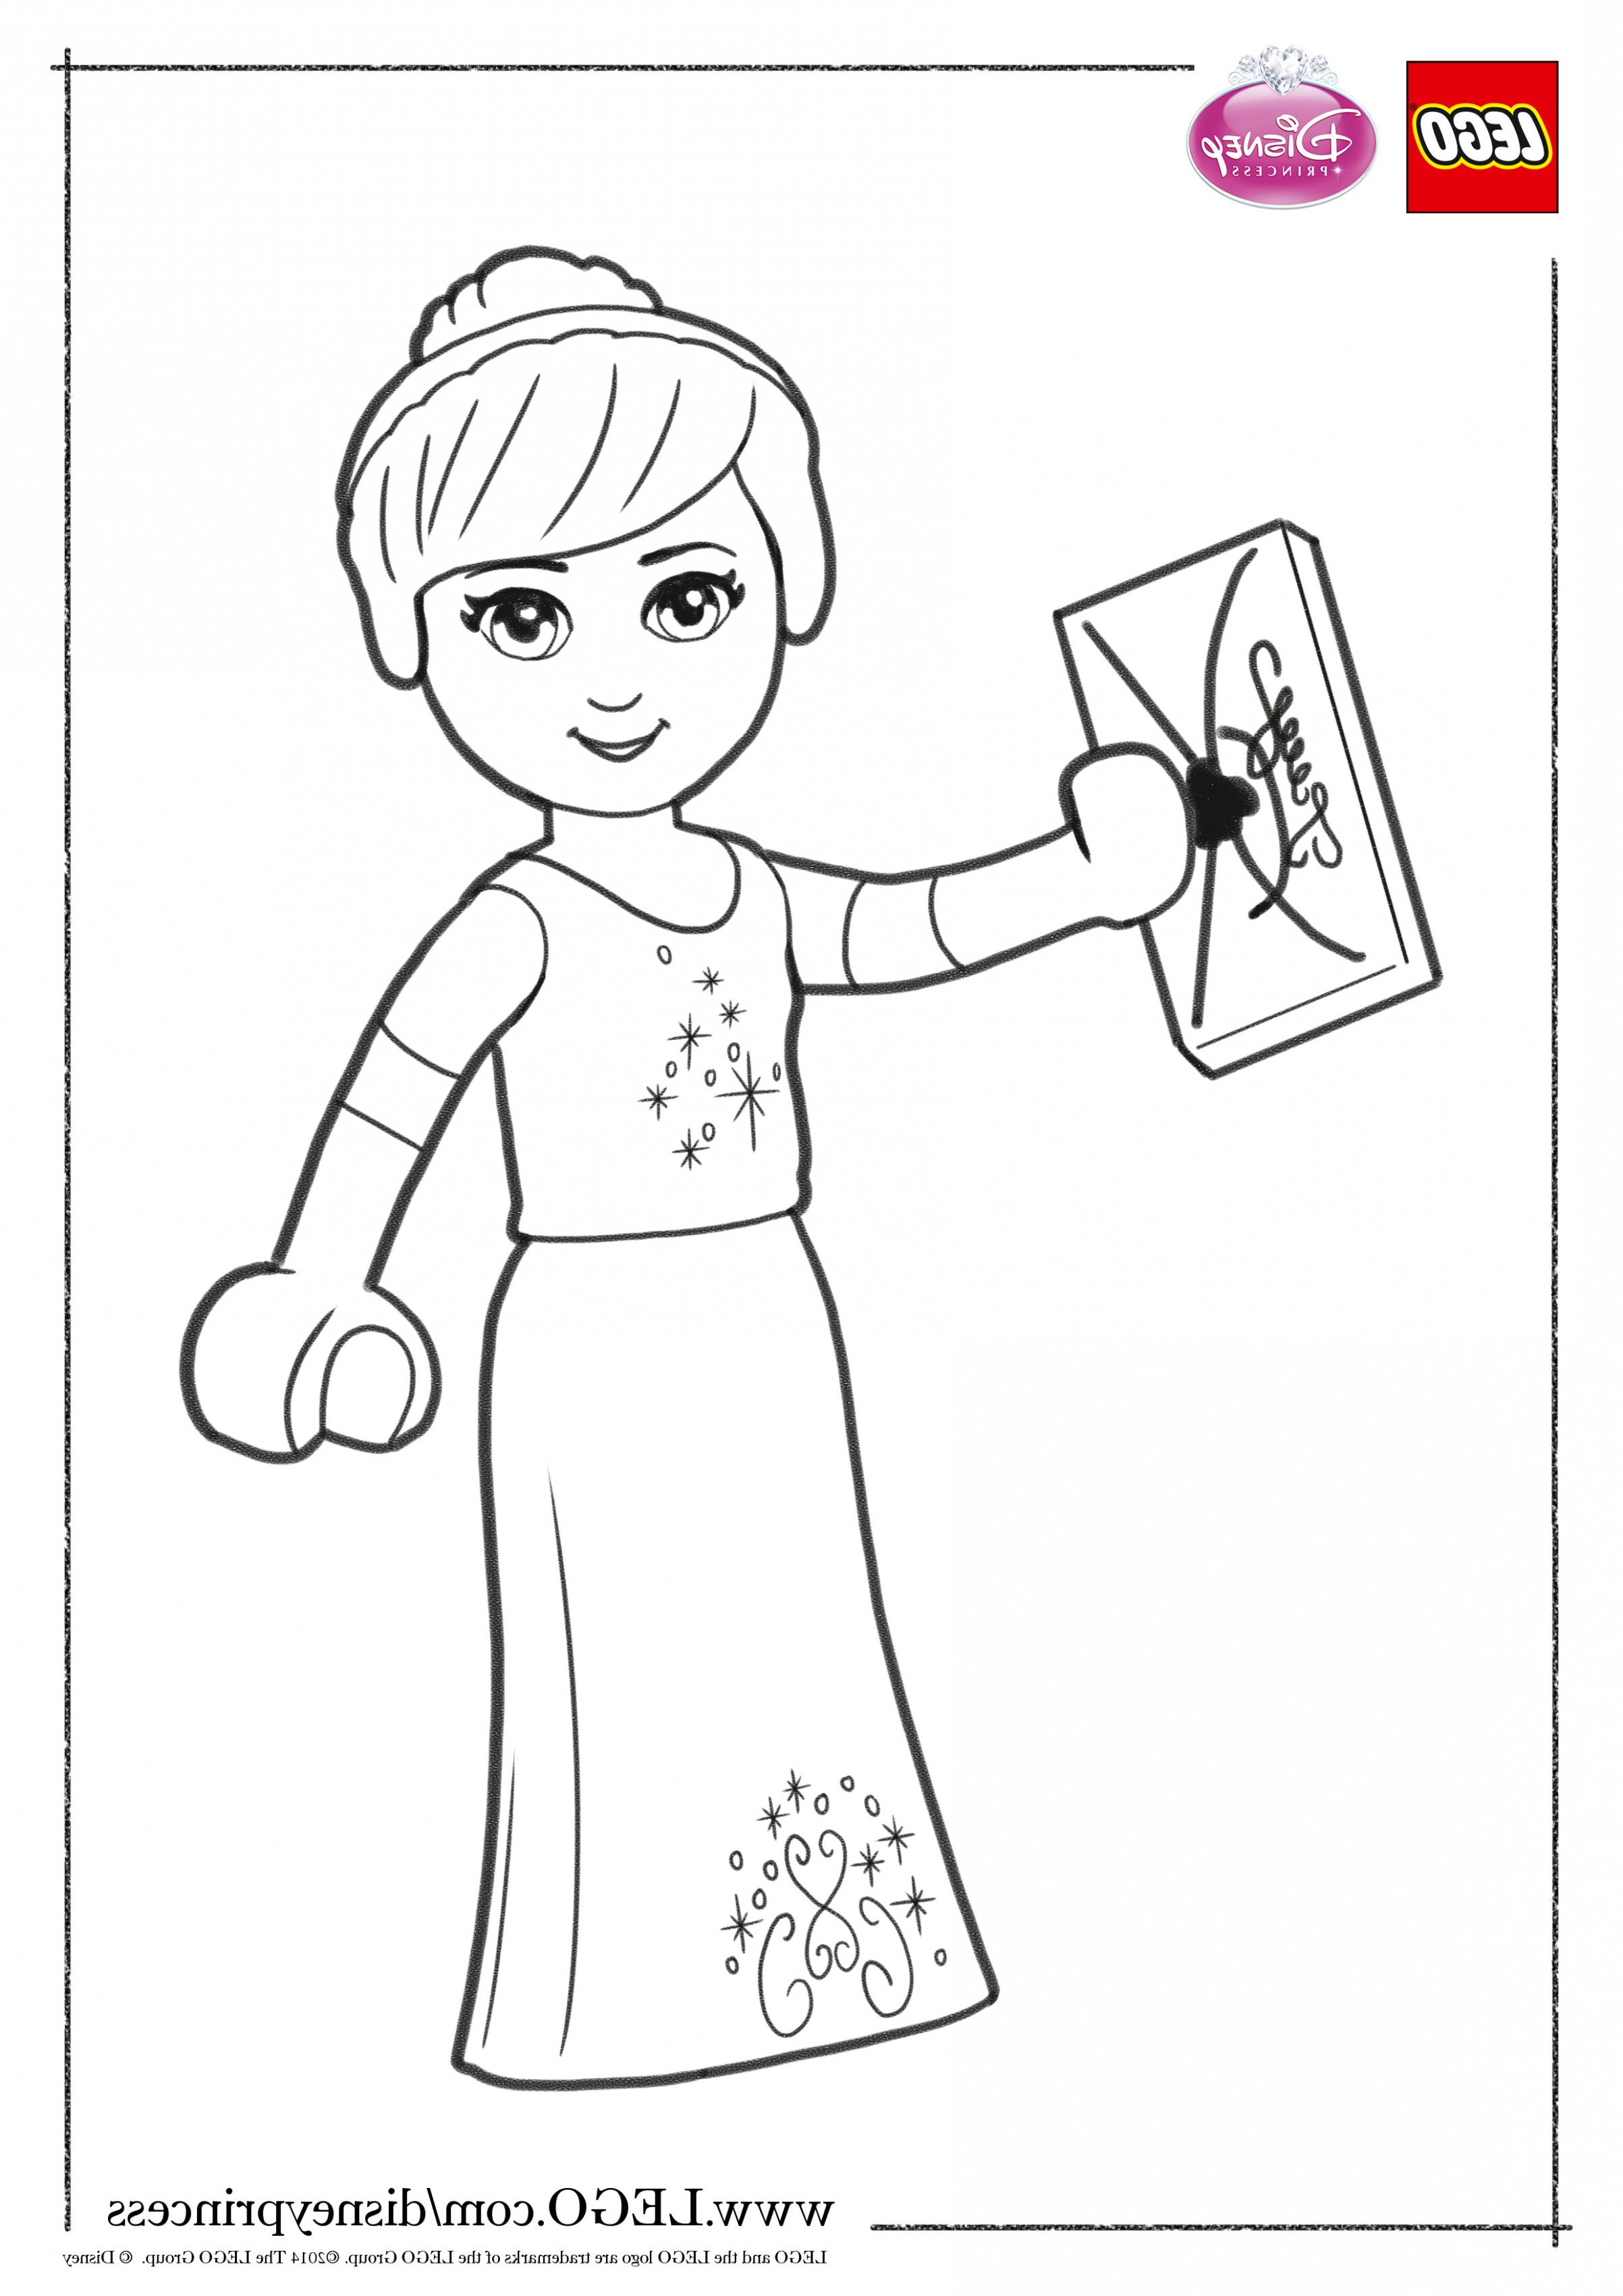 Lego Elsa Coloring Pages Pictures